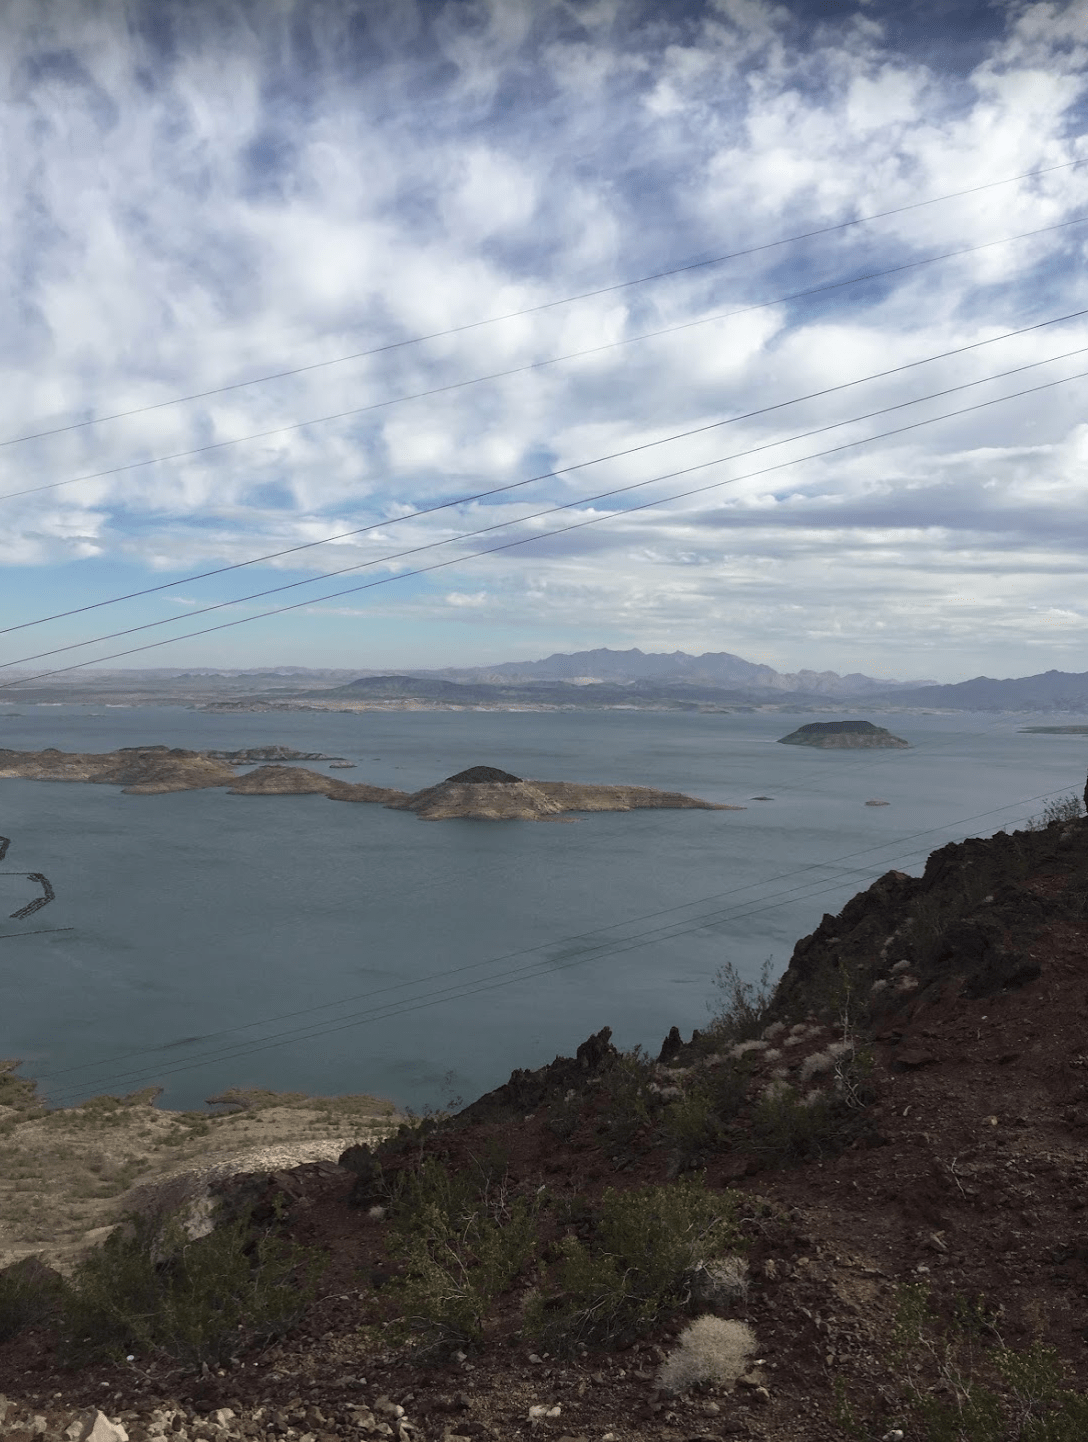 Lake Mead near the Hoover Dam in Nevada